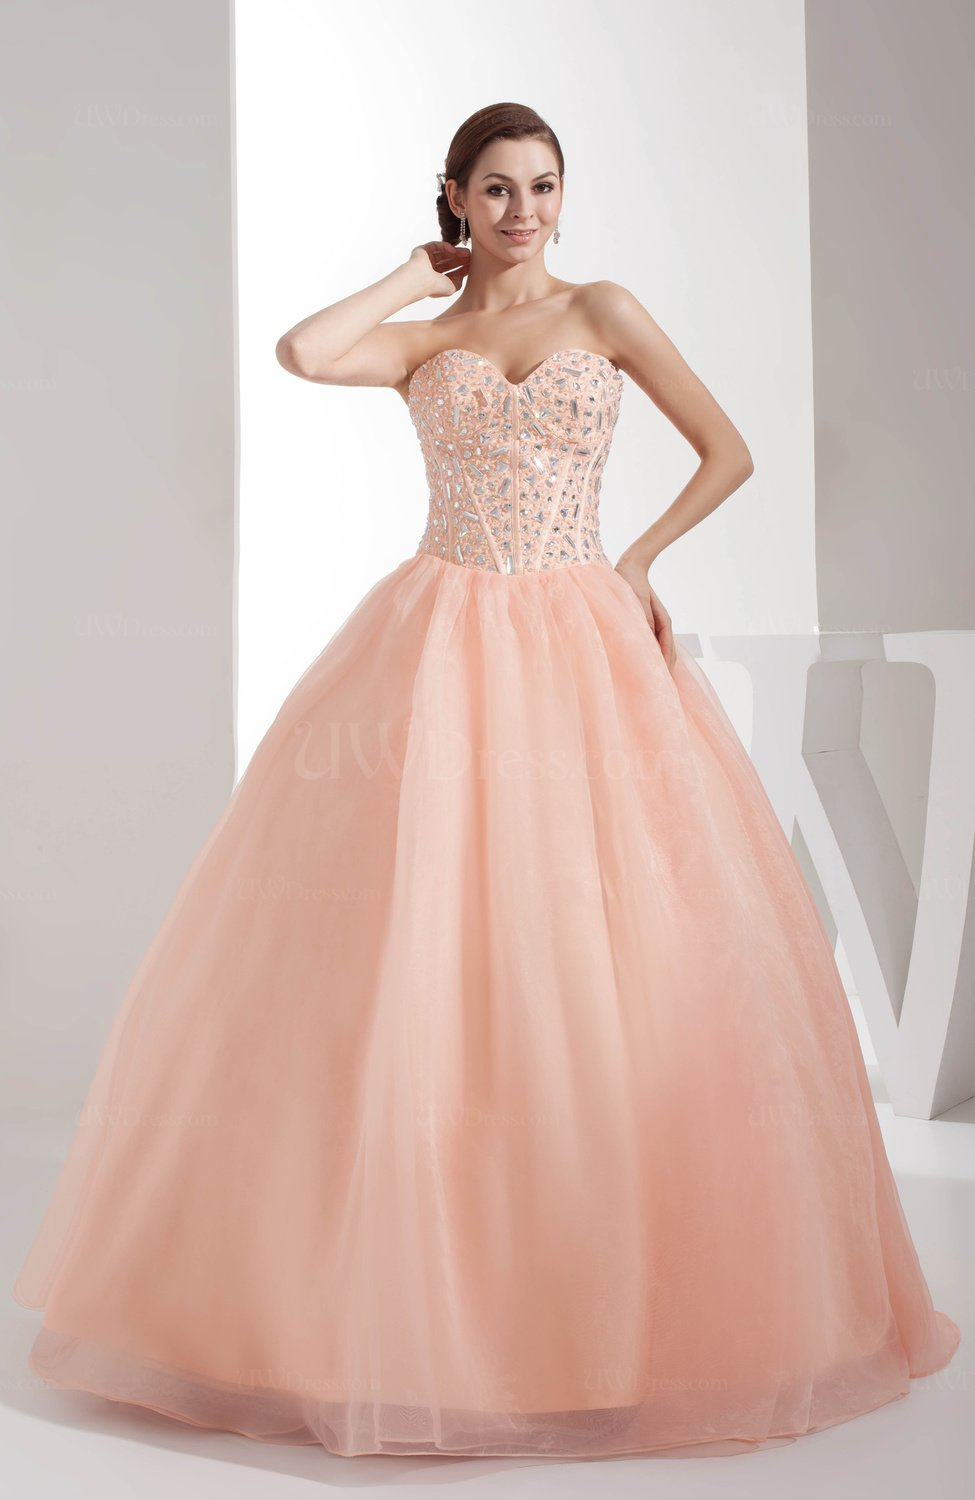 Fresh Salmon Classic Ball Gown Backless Satin Floor Length Sweet 16 ...